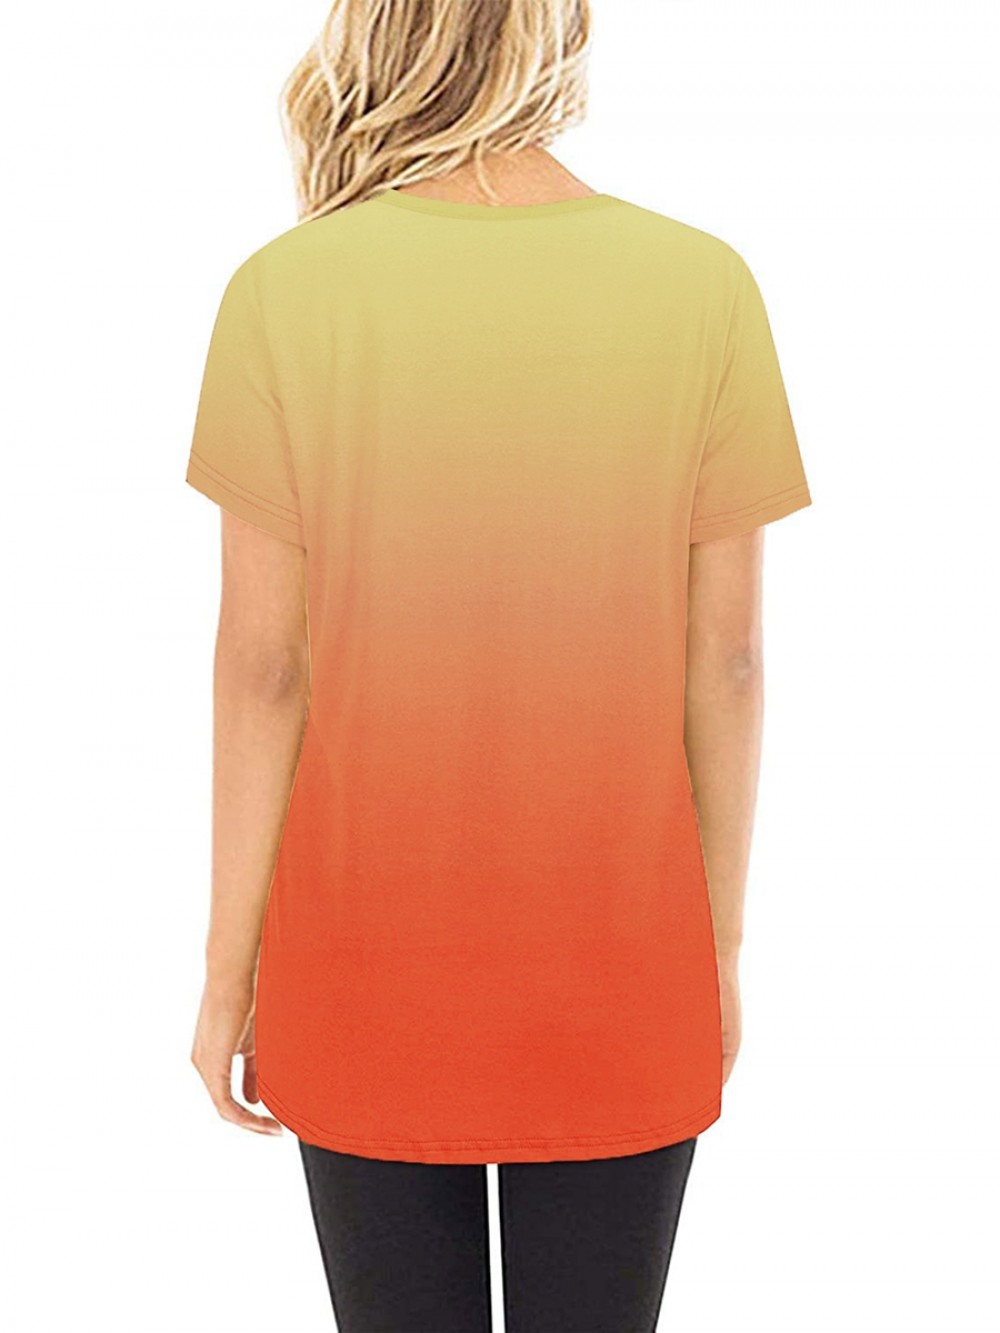 Gradient T-Shirt Round Collar Knotted Cheap Fashion Style